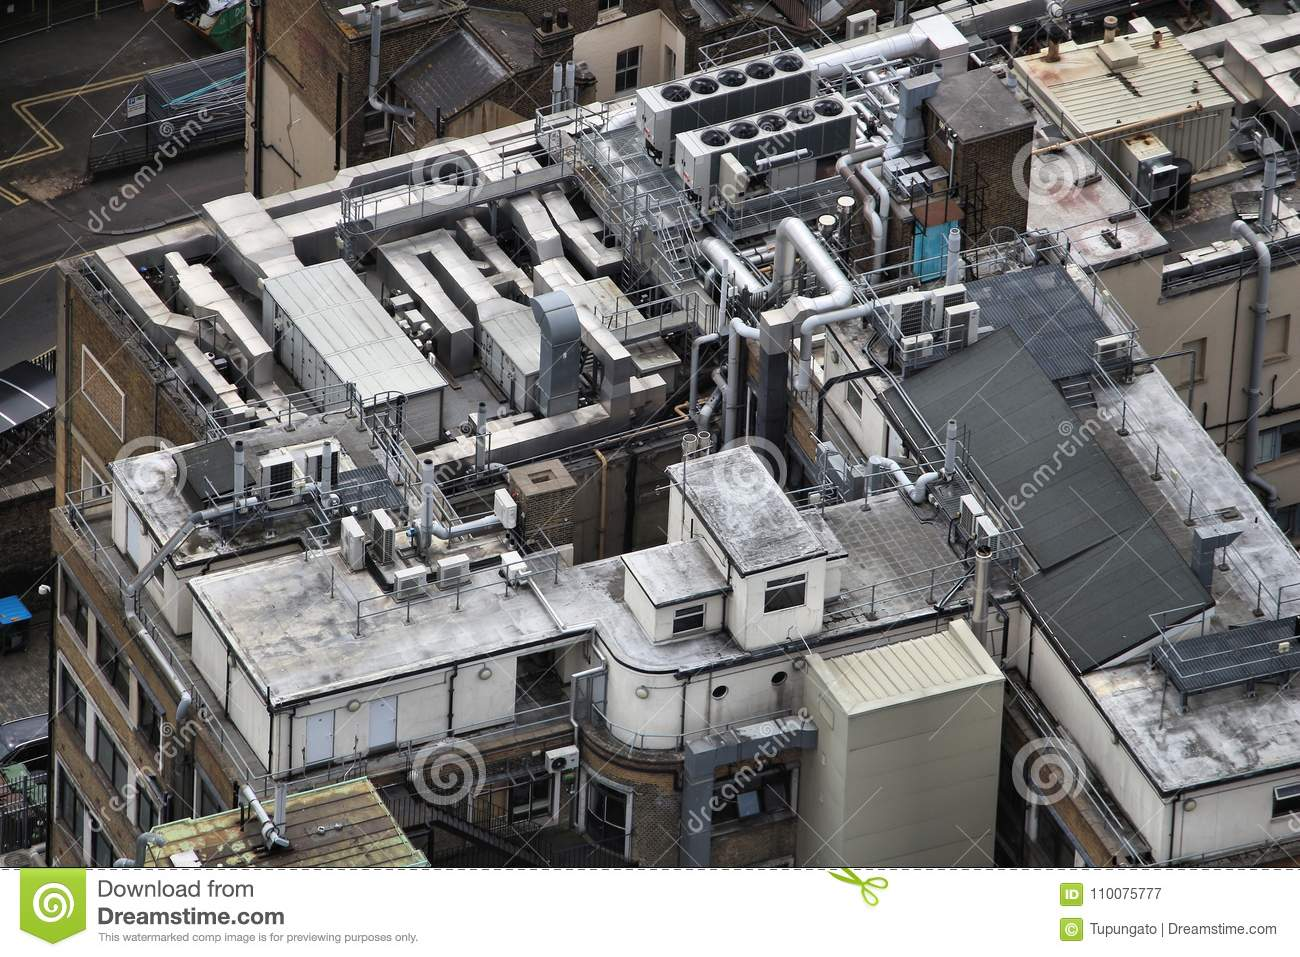 https www dreamstime com exhaust vents industrial air conditioning ventilation units building roof top london uk hvac climate control image110075777